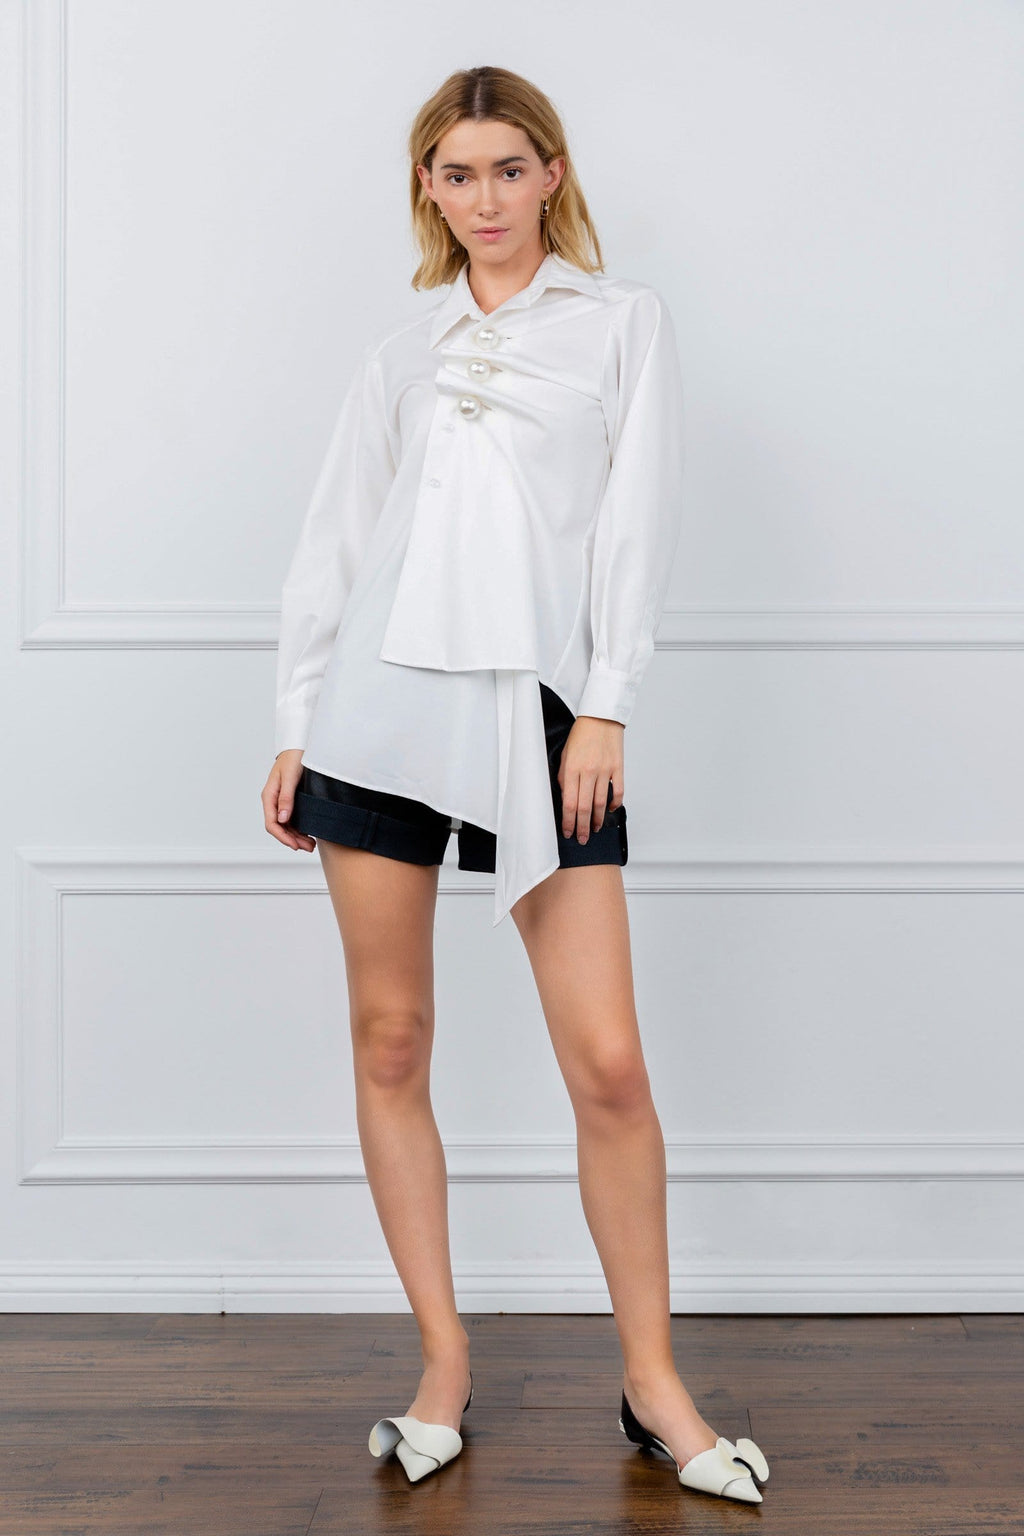 Perlana White Asymmetrical Tunic